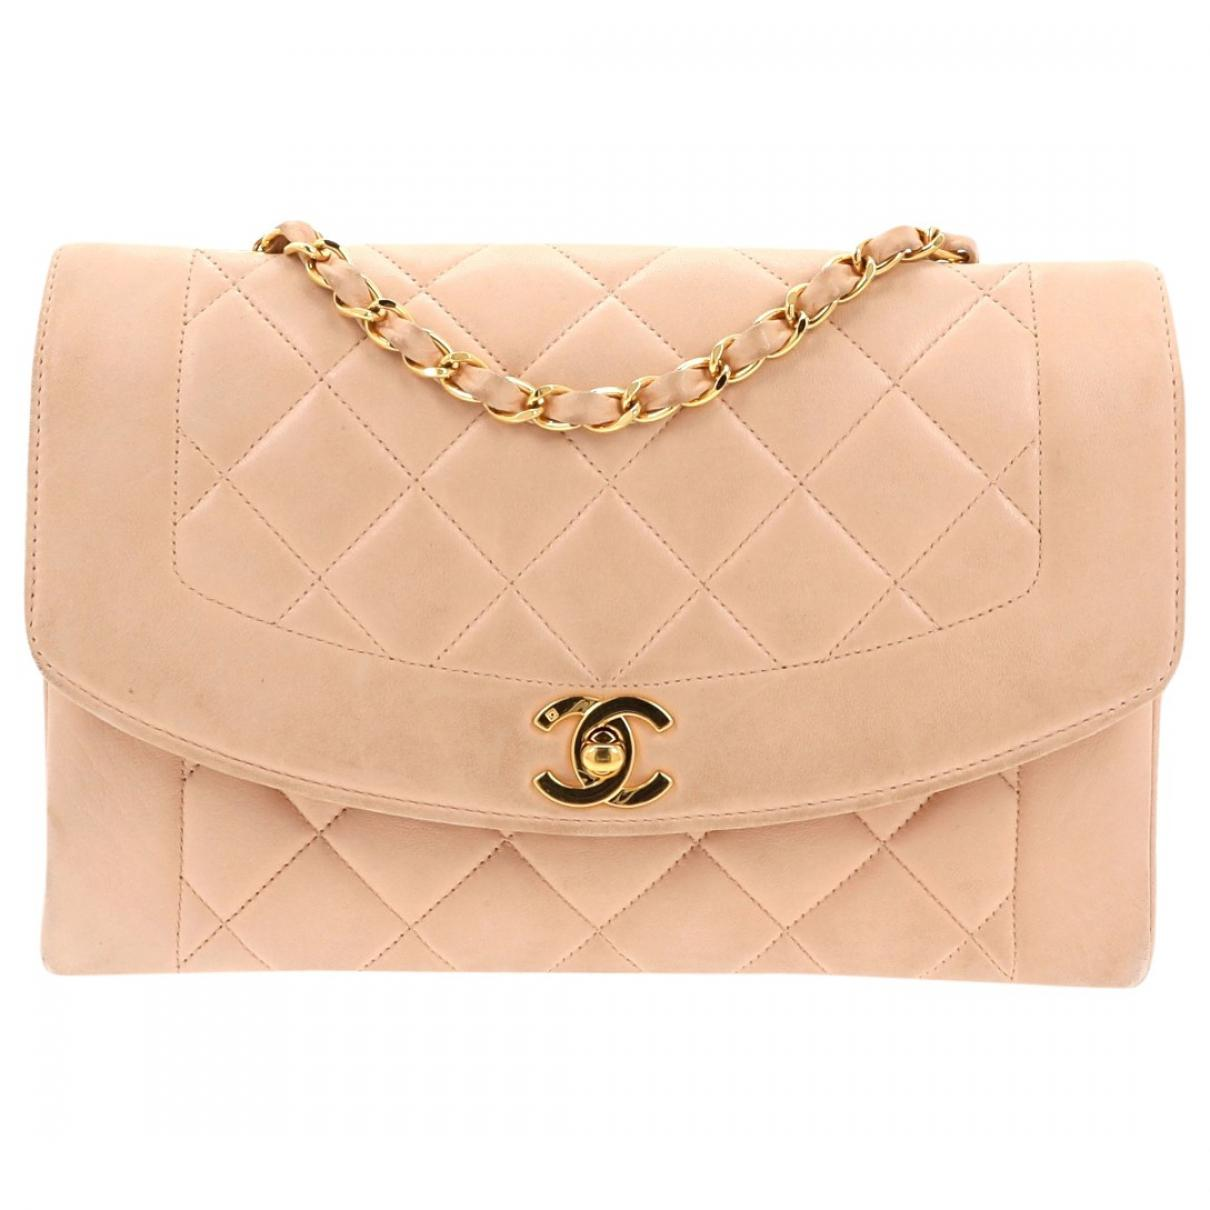 f56a2ea96775b7 Chanel. Women's Vintage Diana Pink Leather Handbag. £1,983 From Vestiaire  Collective